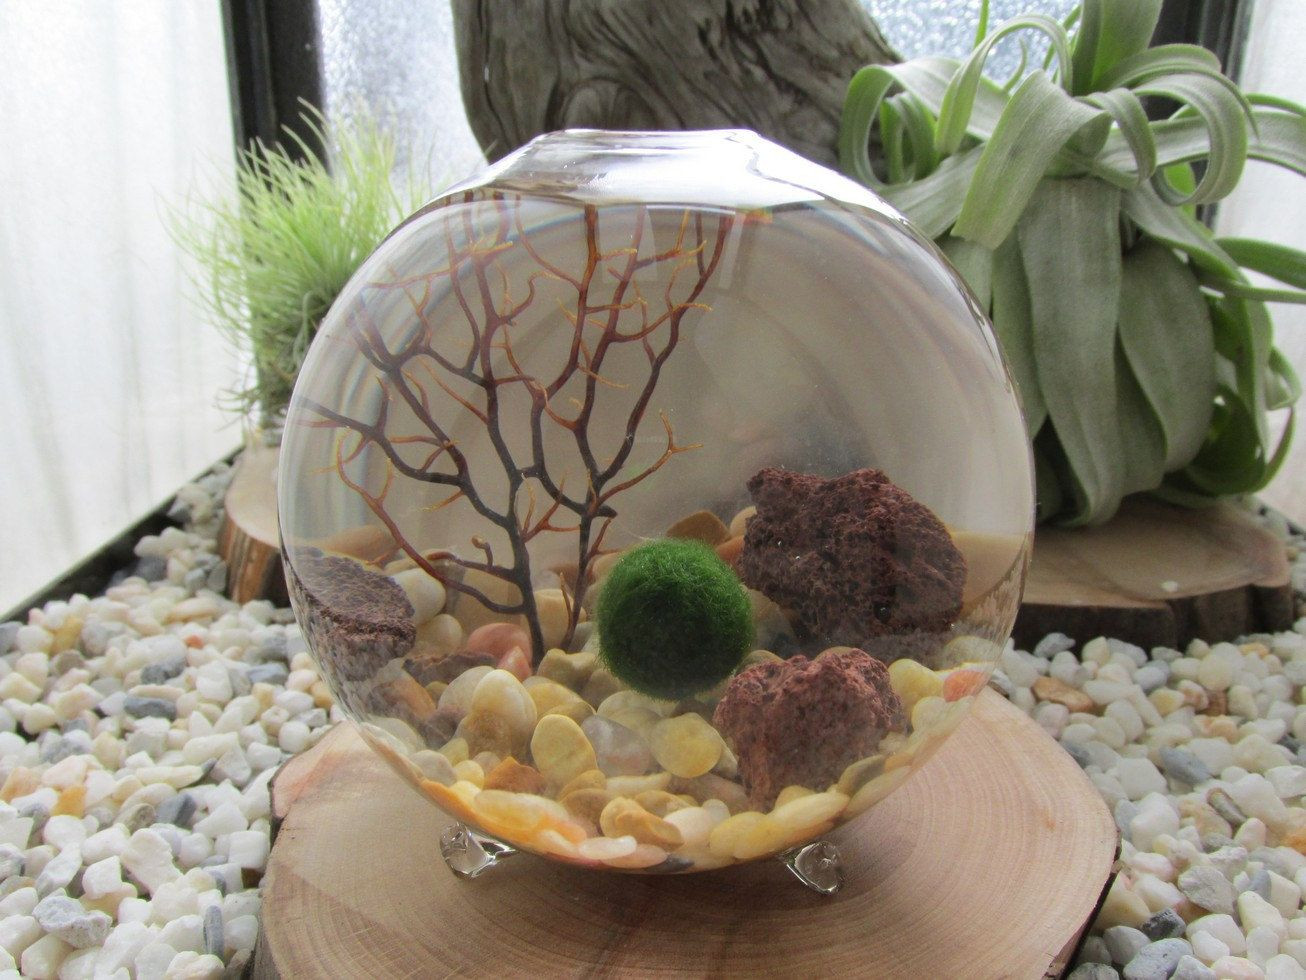 small decorative stones for vases of marimo terrarium kit miniature terrarium with living japanese moss inside marimo terrarium kit by midnight blossom miniature terrarium with living japanese moss ball small footed vase with pebbles and sea fan 26 50 usd by